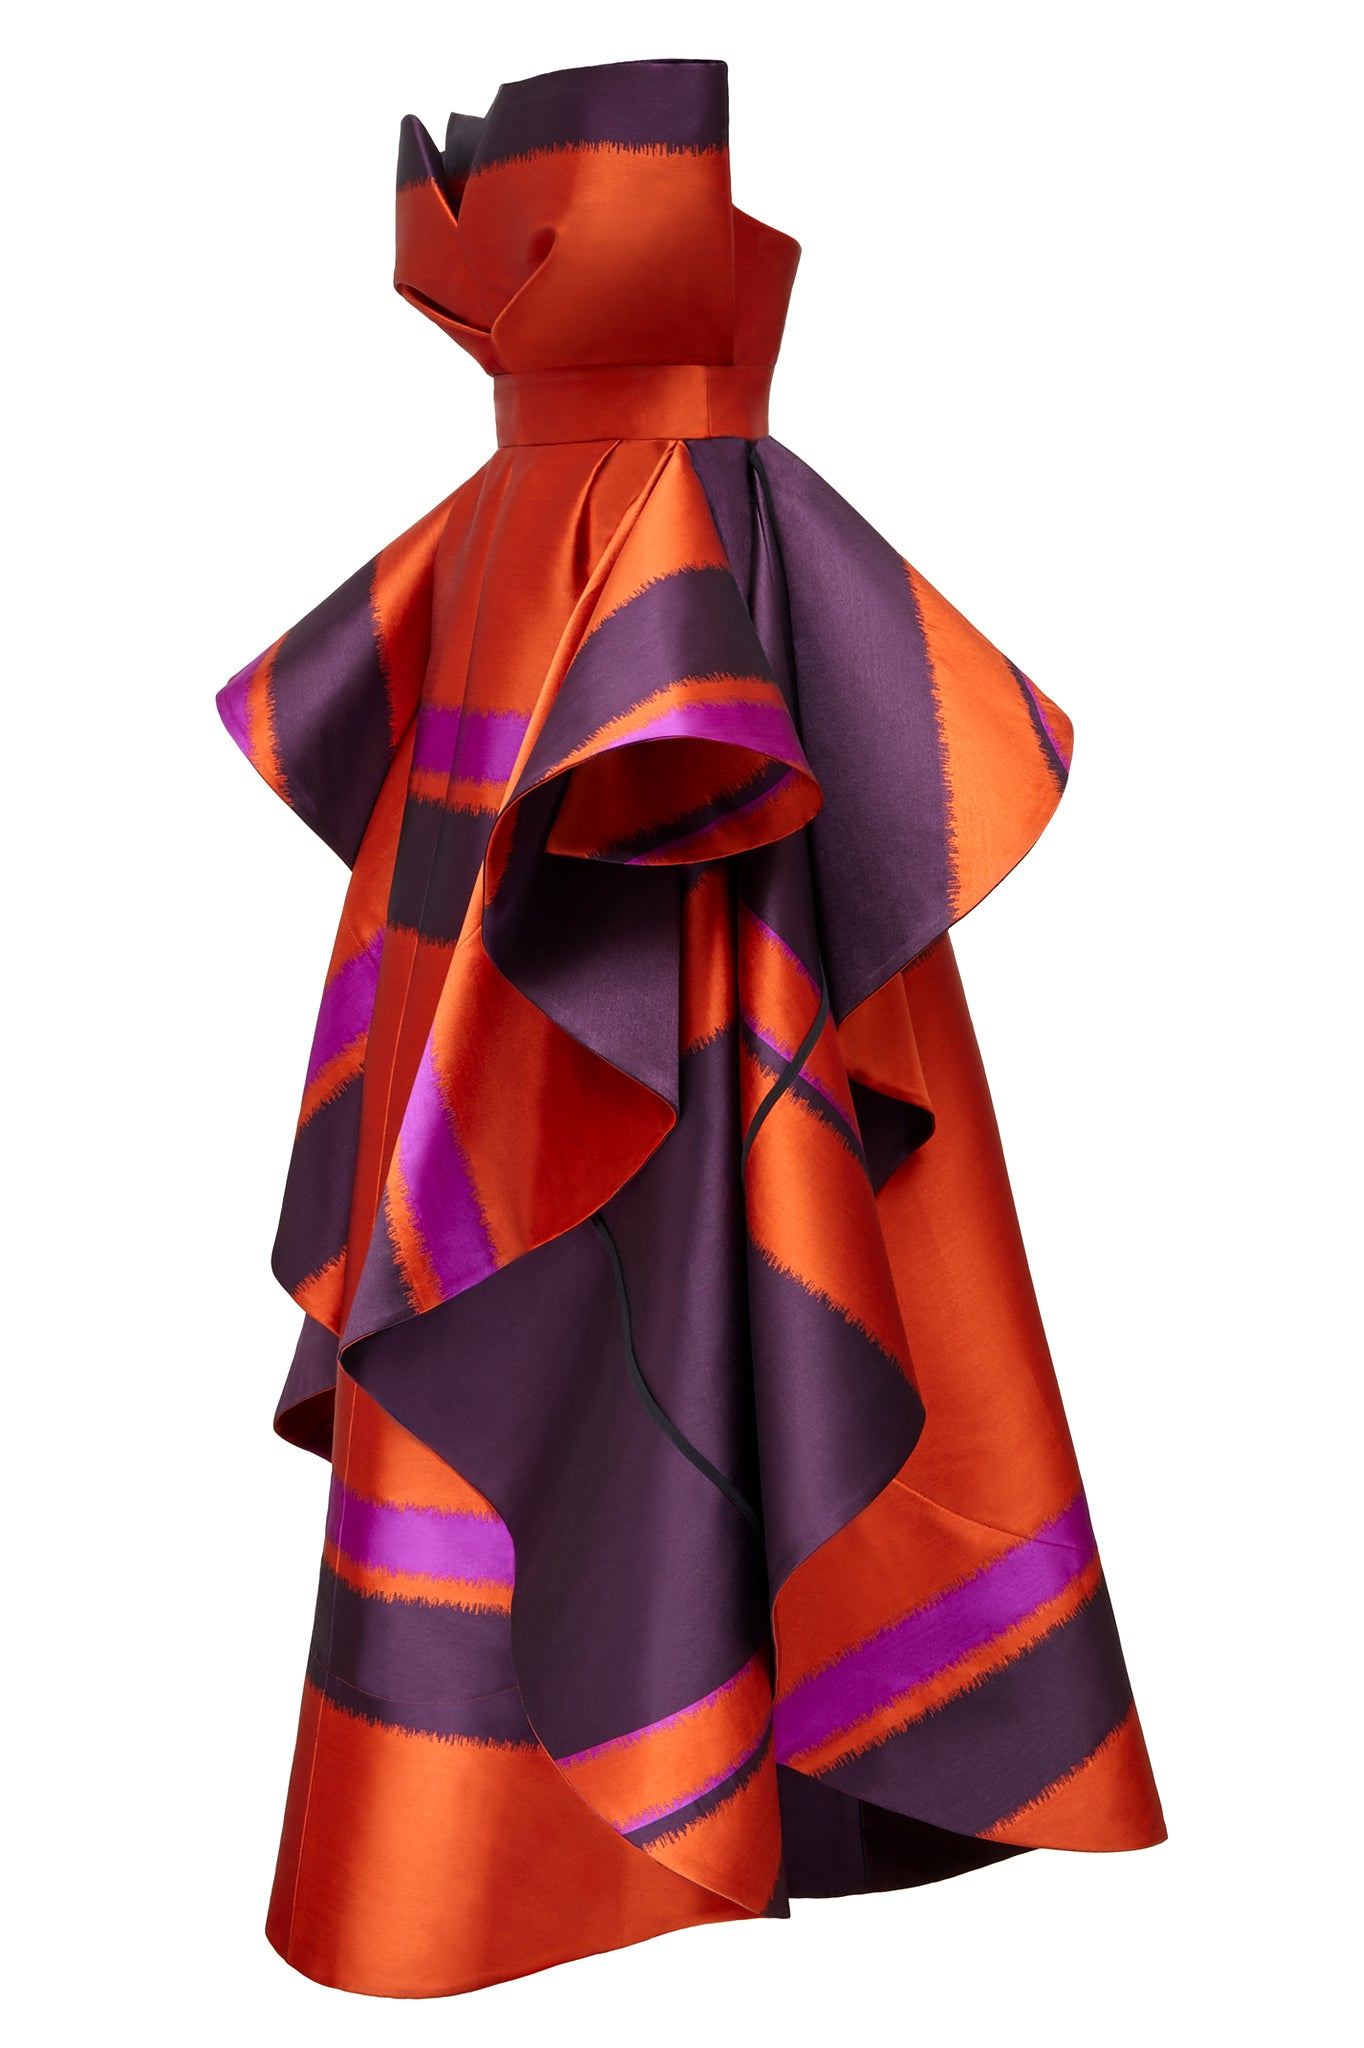 Another feature piece on our AW17 catwalk, this 'erupt' dress is fabricated here in a striped orange, pink and deep purple blended silk, this breathtaking evening / occasion dress is the perfect piece for any event if you want to stand out from the crowd.   Fitted at the waist, and comprising of an internal corset, the 3D drape at the front gives a sculptural element that balances perfectly with the dramatic sides.